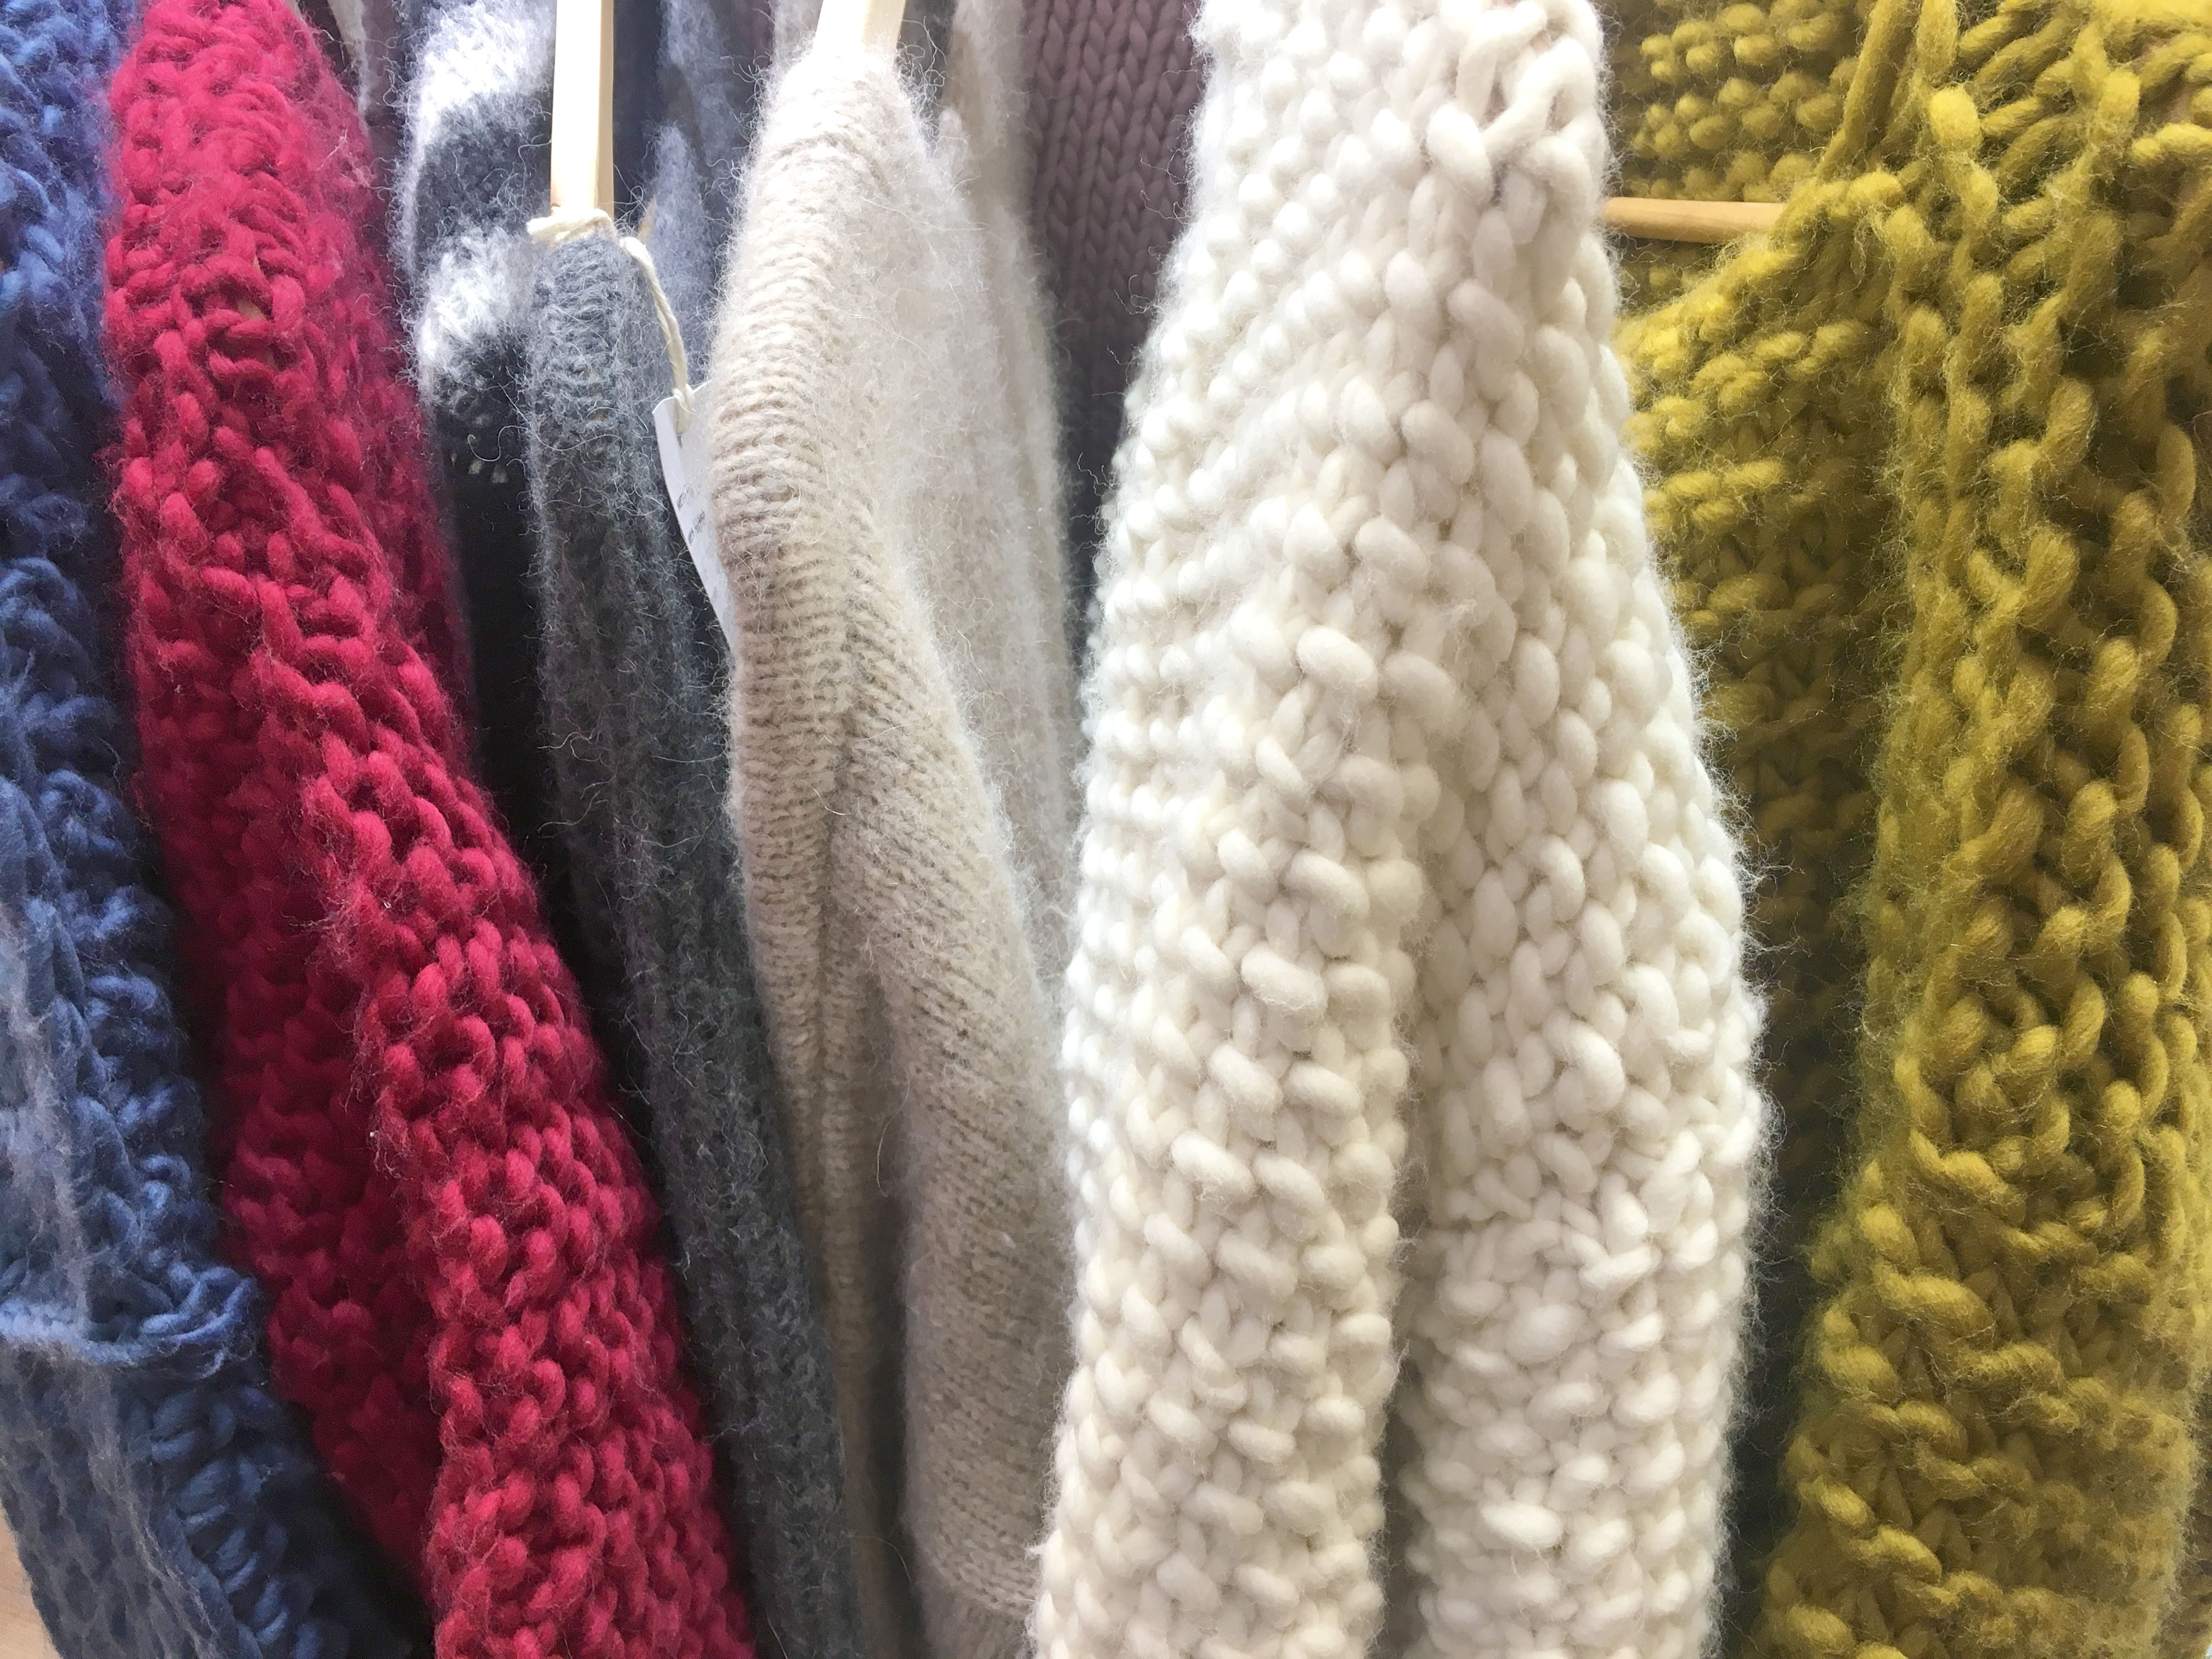 Wool and the Gang Jumpers hanging on display